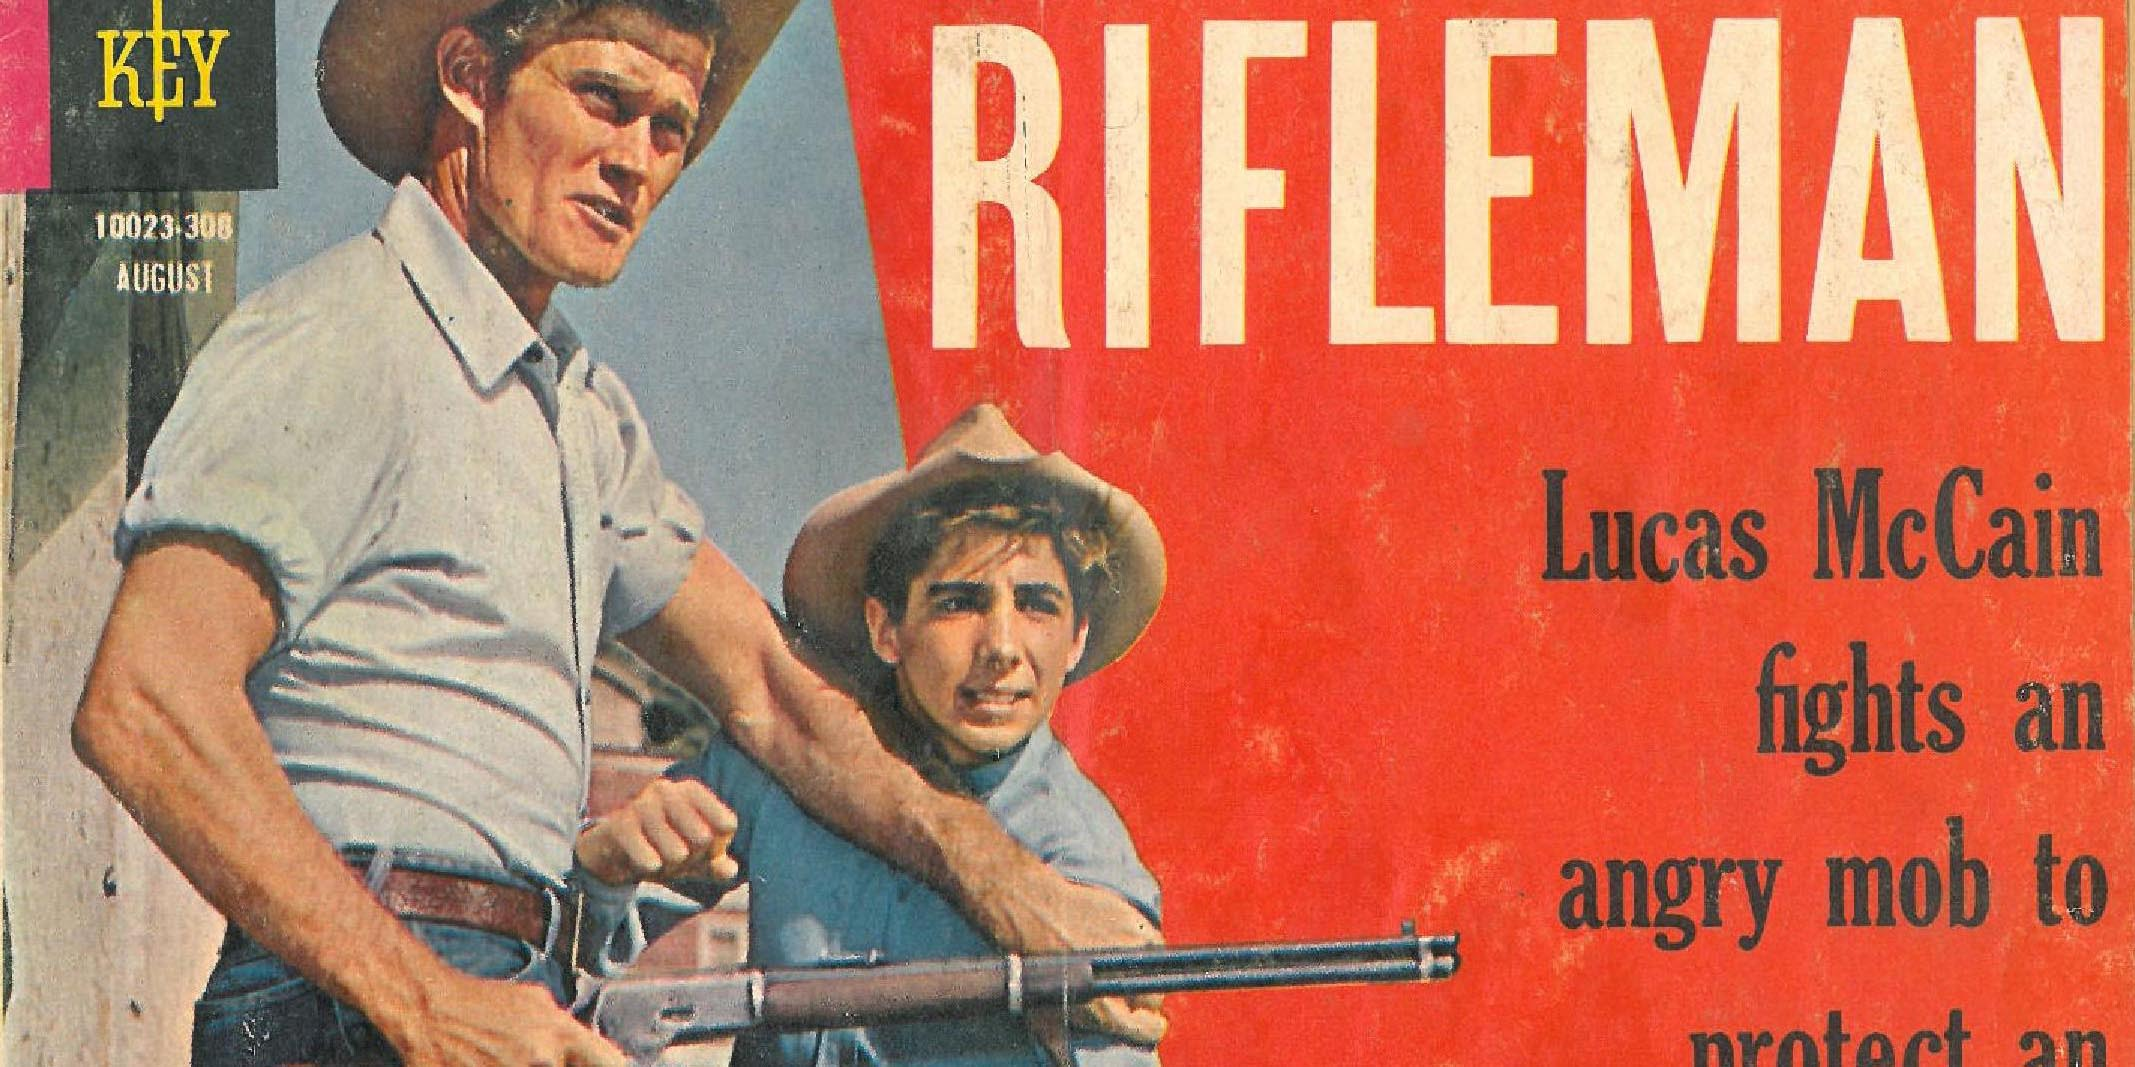 7 reasons why 'The Rifleman' should be your favorite Western